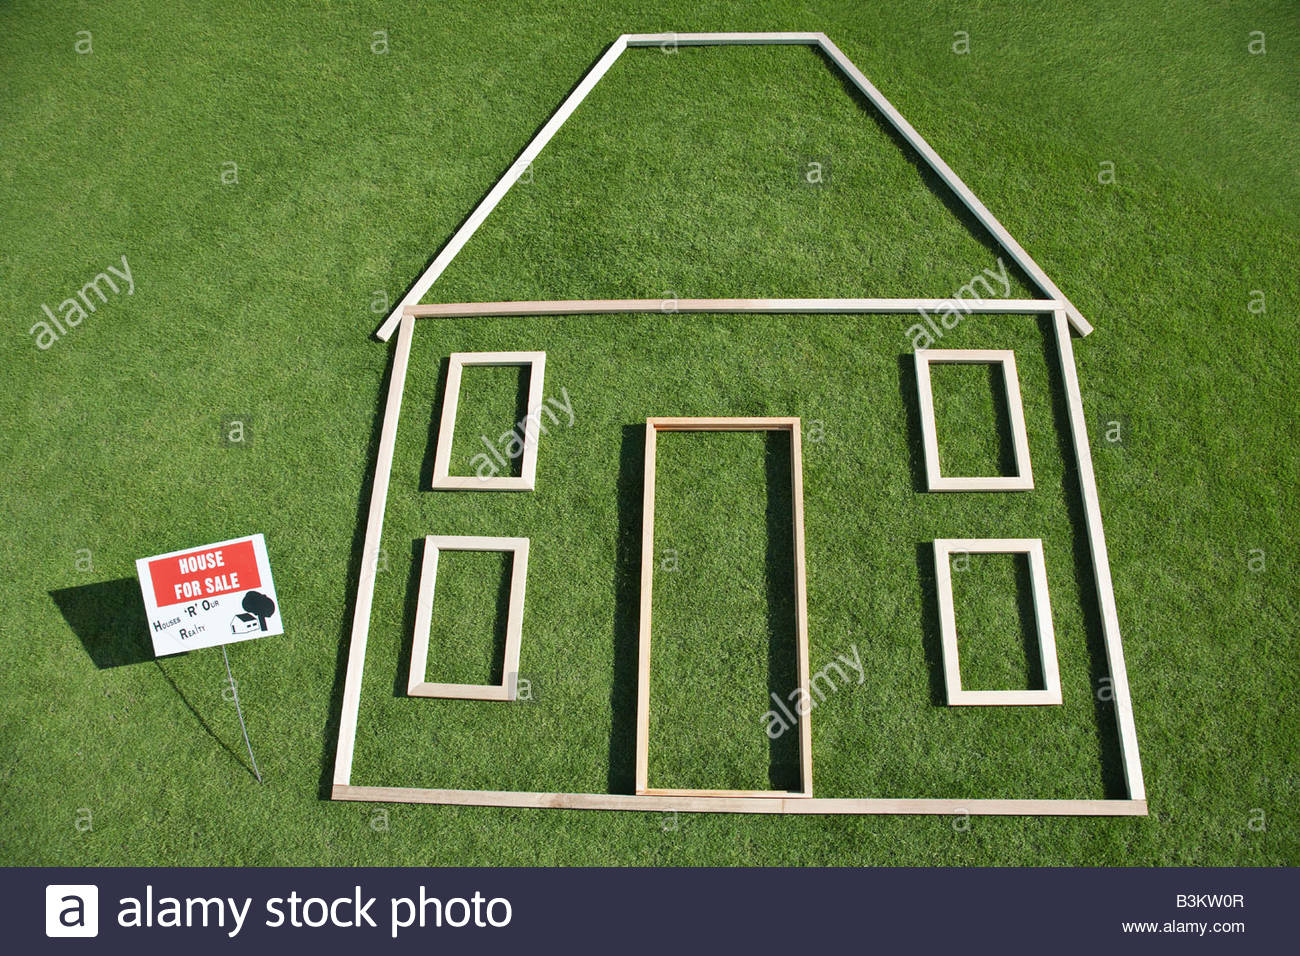 """""""For sale"""" sign and house outline in grass - Stock Image"""